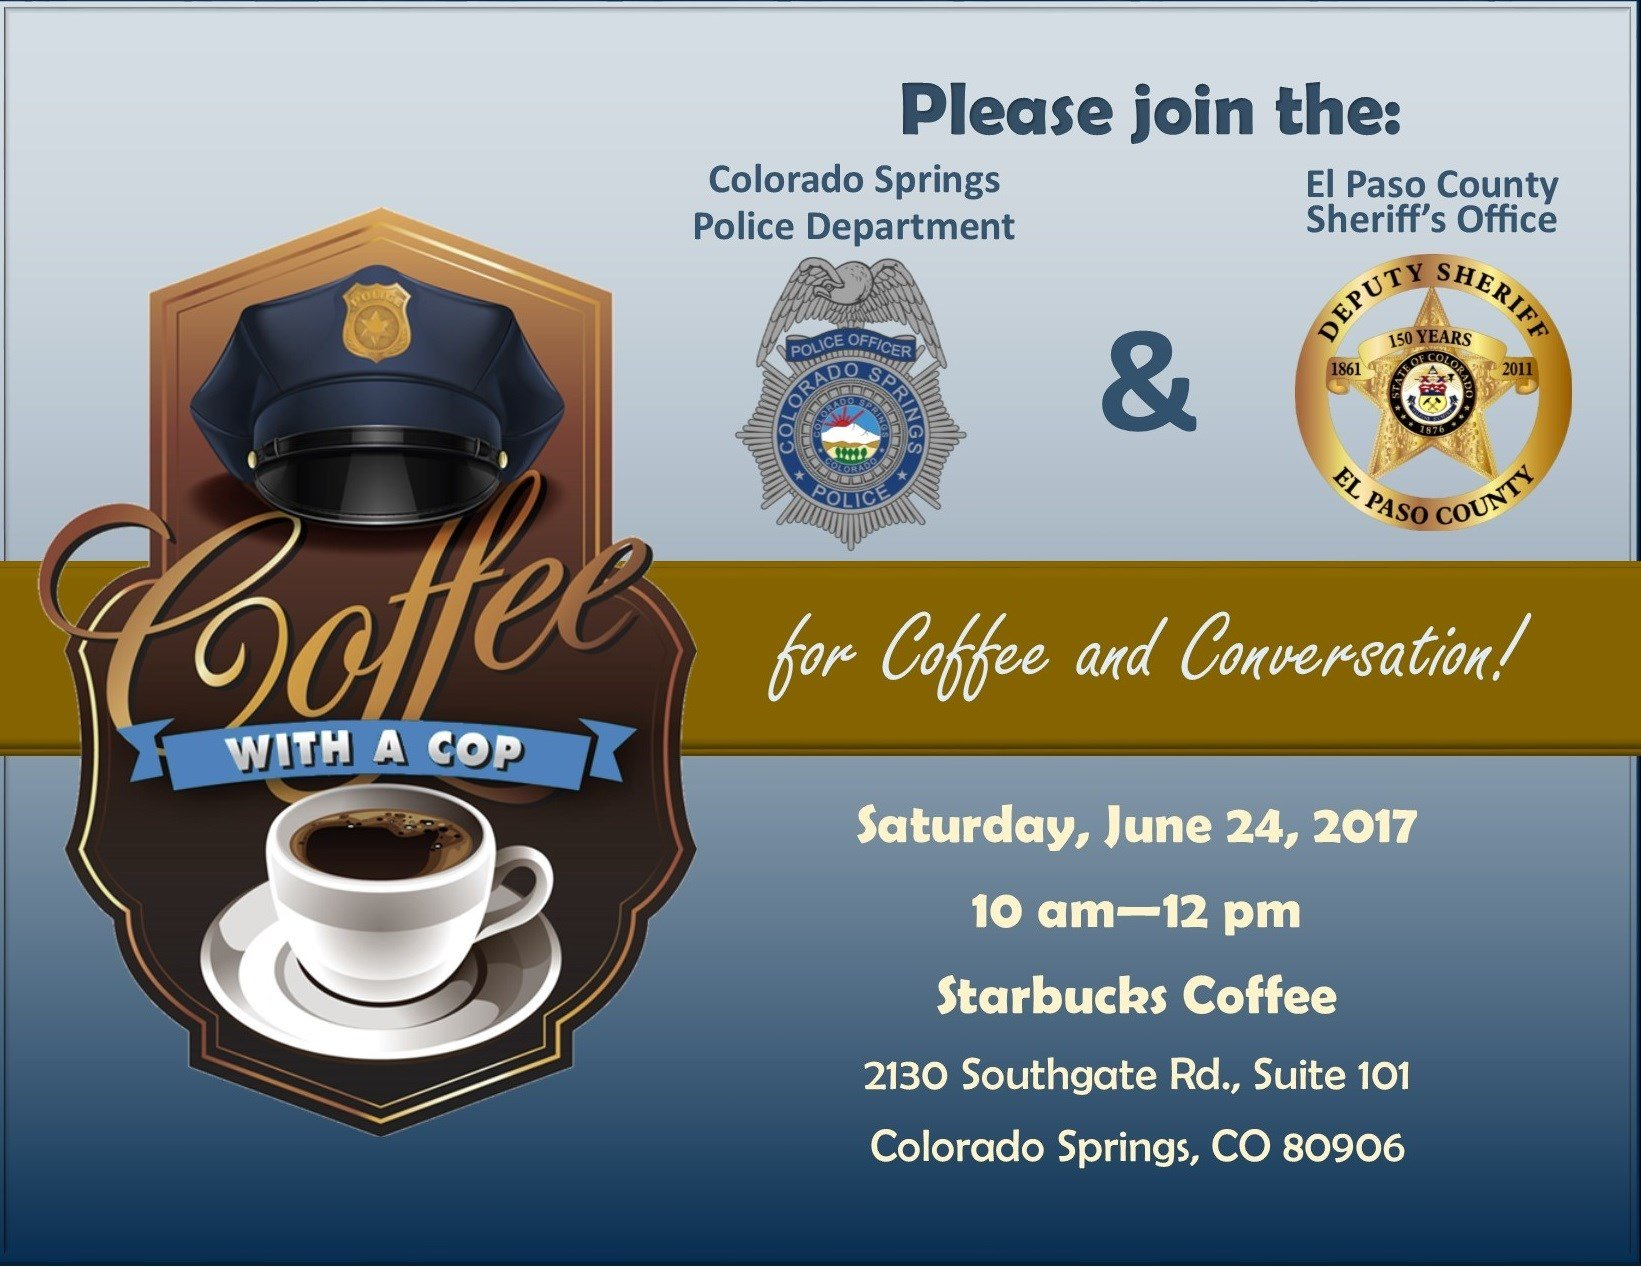 coffee with a cop in colorado springs this weekend koaa